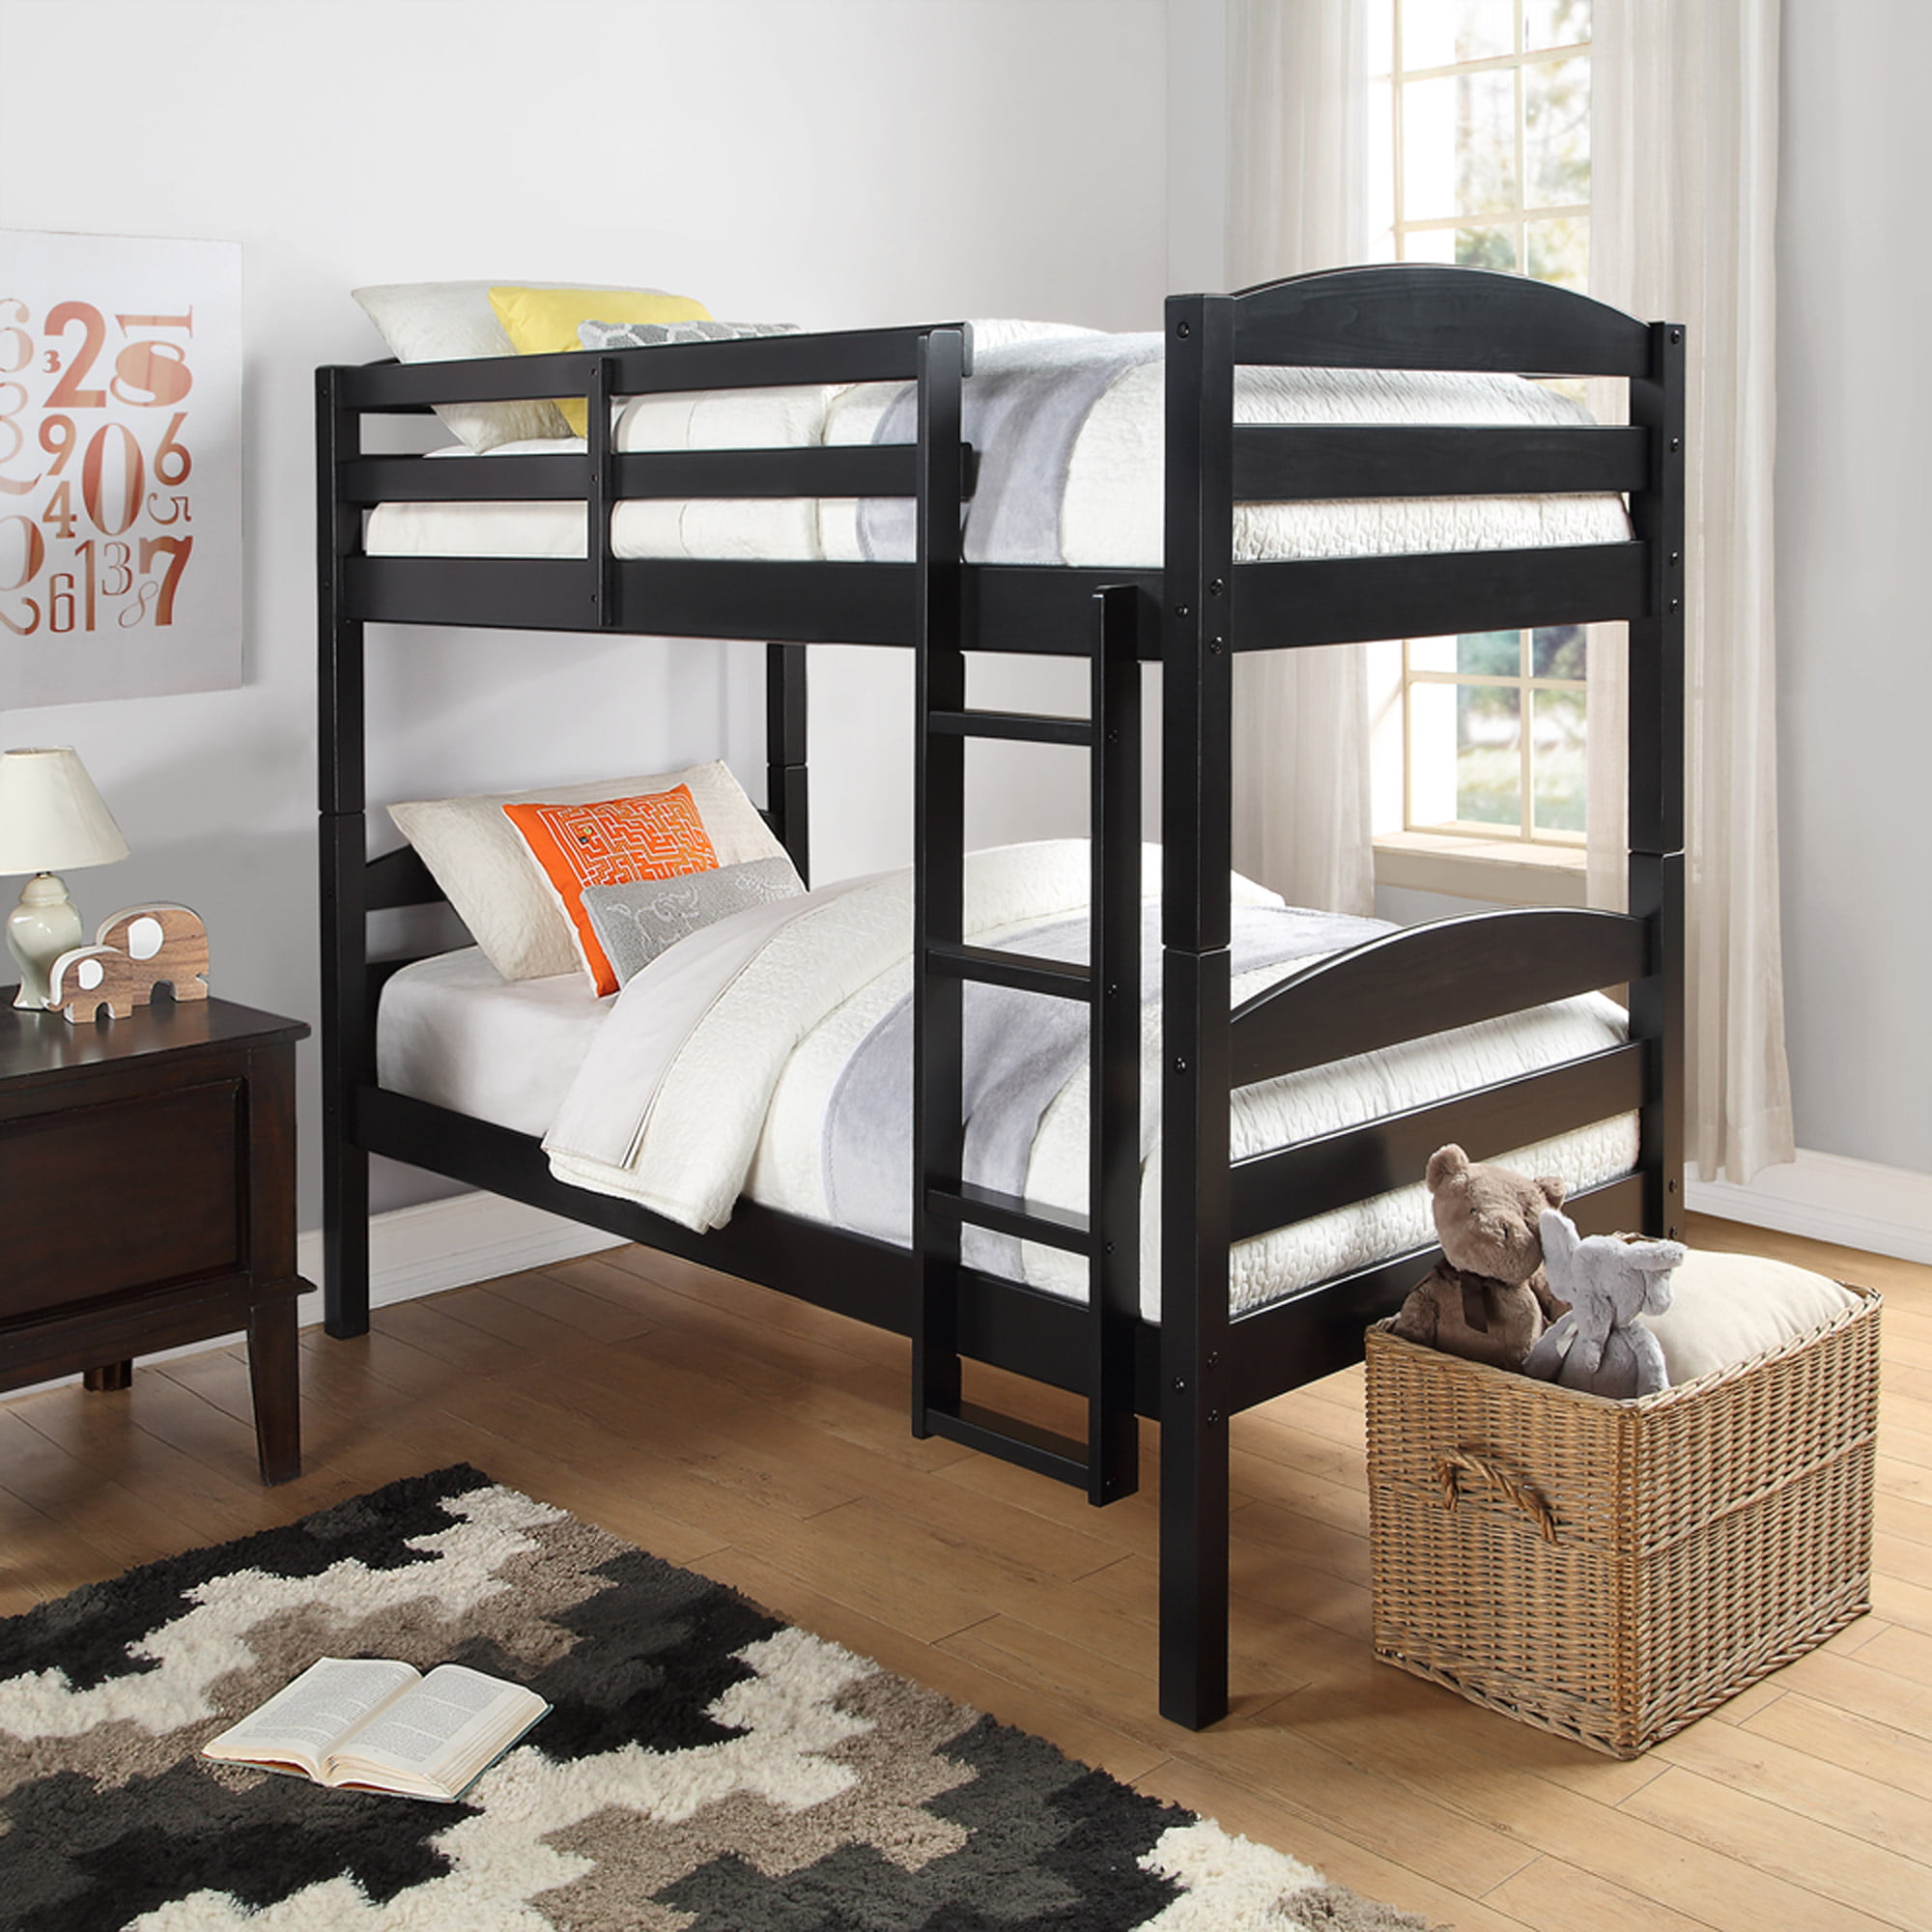 Permalink to 34 clever pict of Wood Bunk Bed